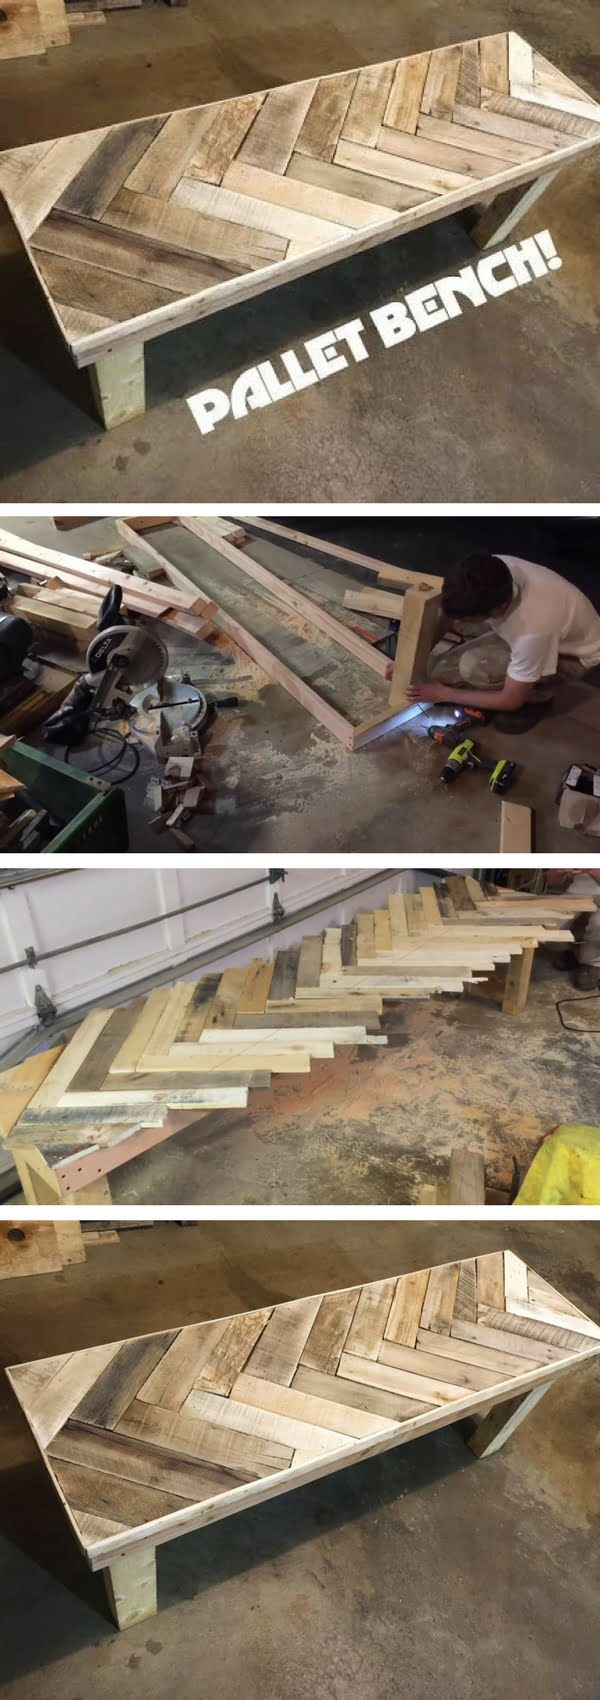 Check out the tutorial on how to make a DIY pallet bench